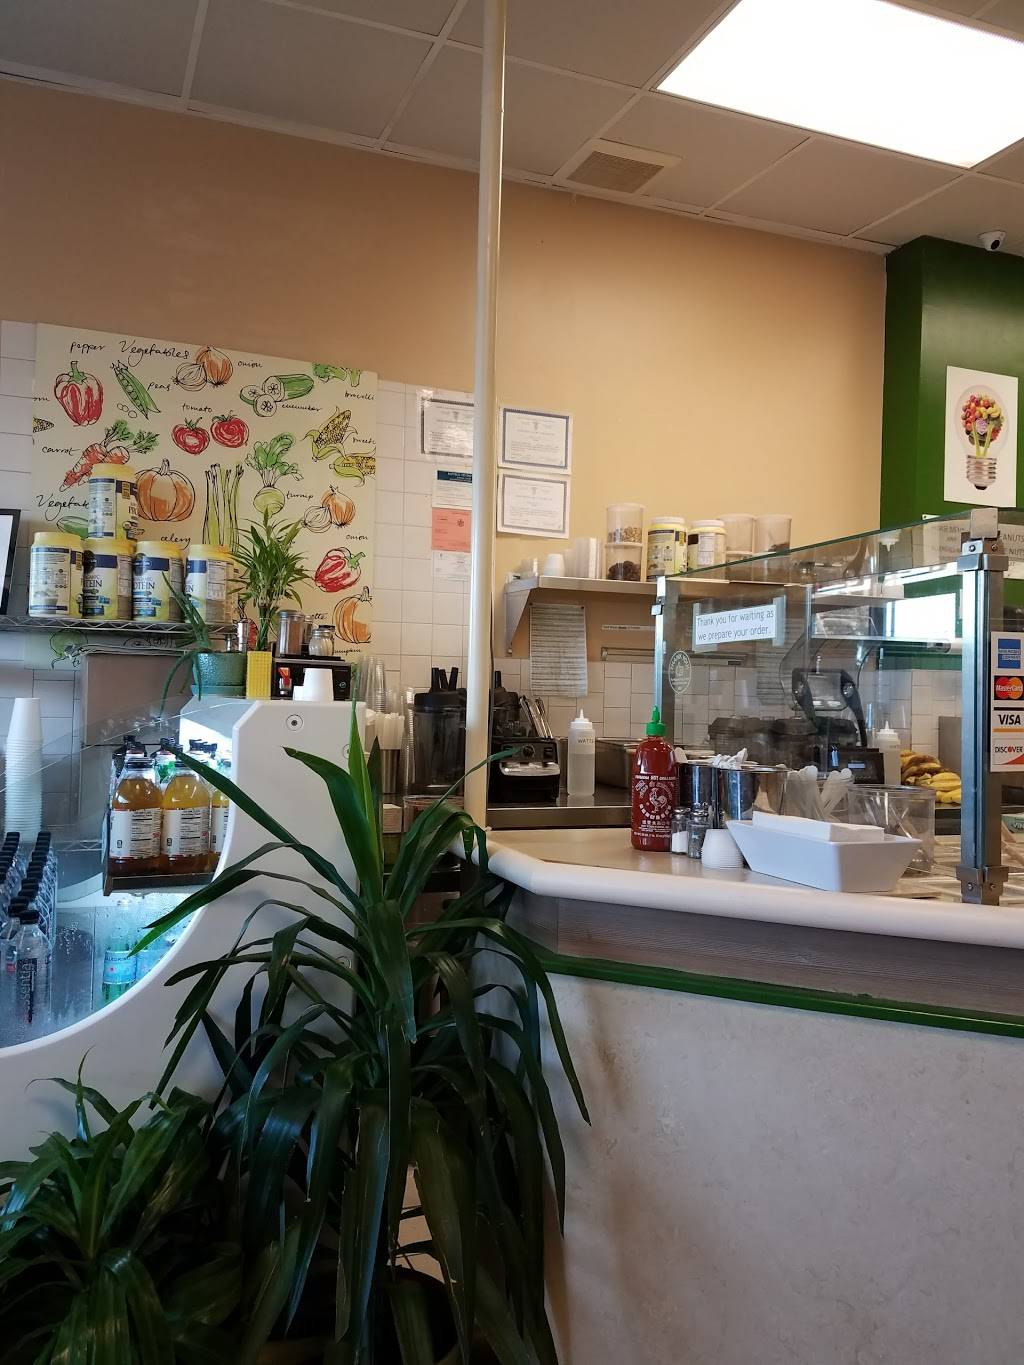 Plant Wise   restaurant   15 E Deer Park Rd, Dix Hills, NY 11746, USA   6314869222 OR +1 631-486-9222